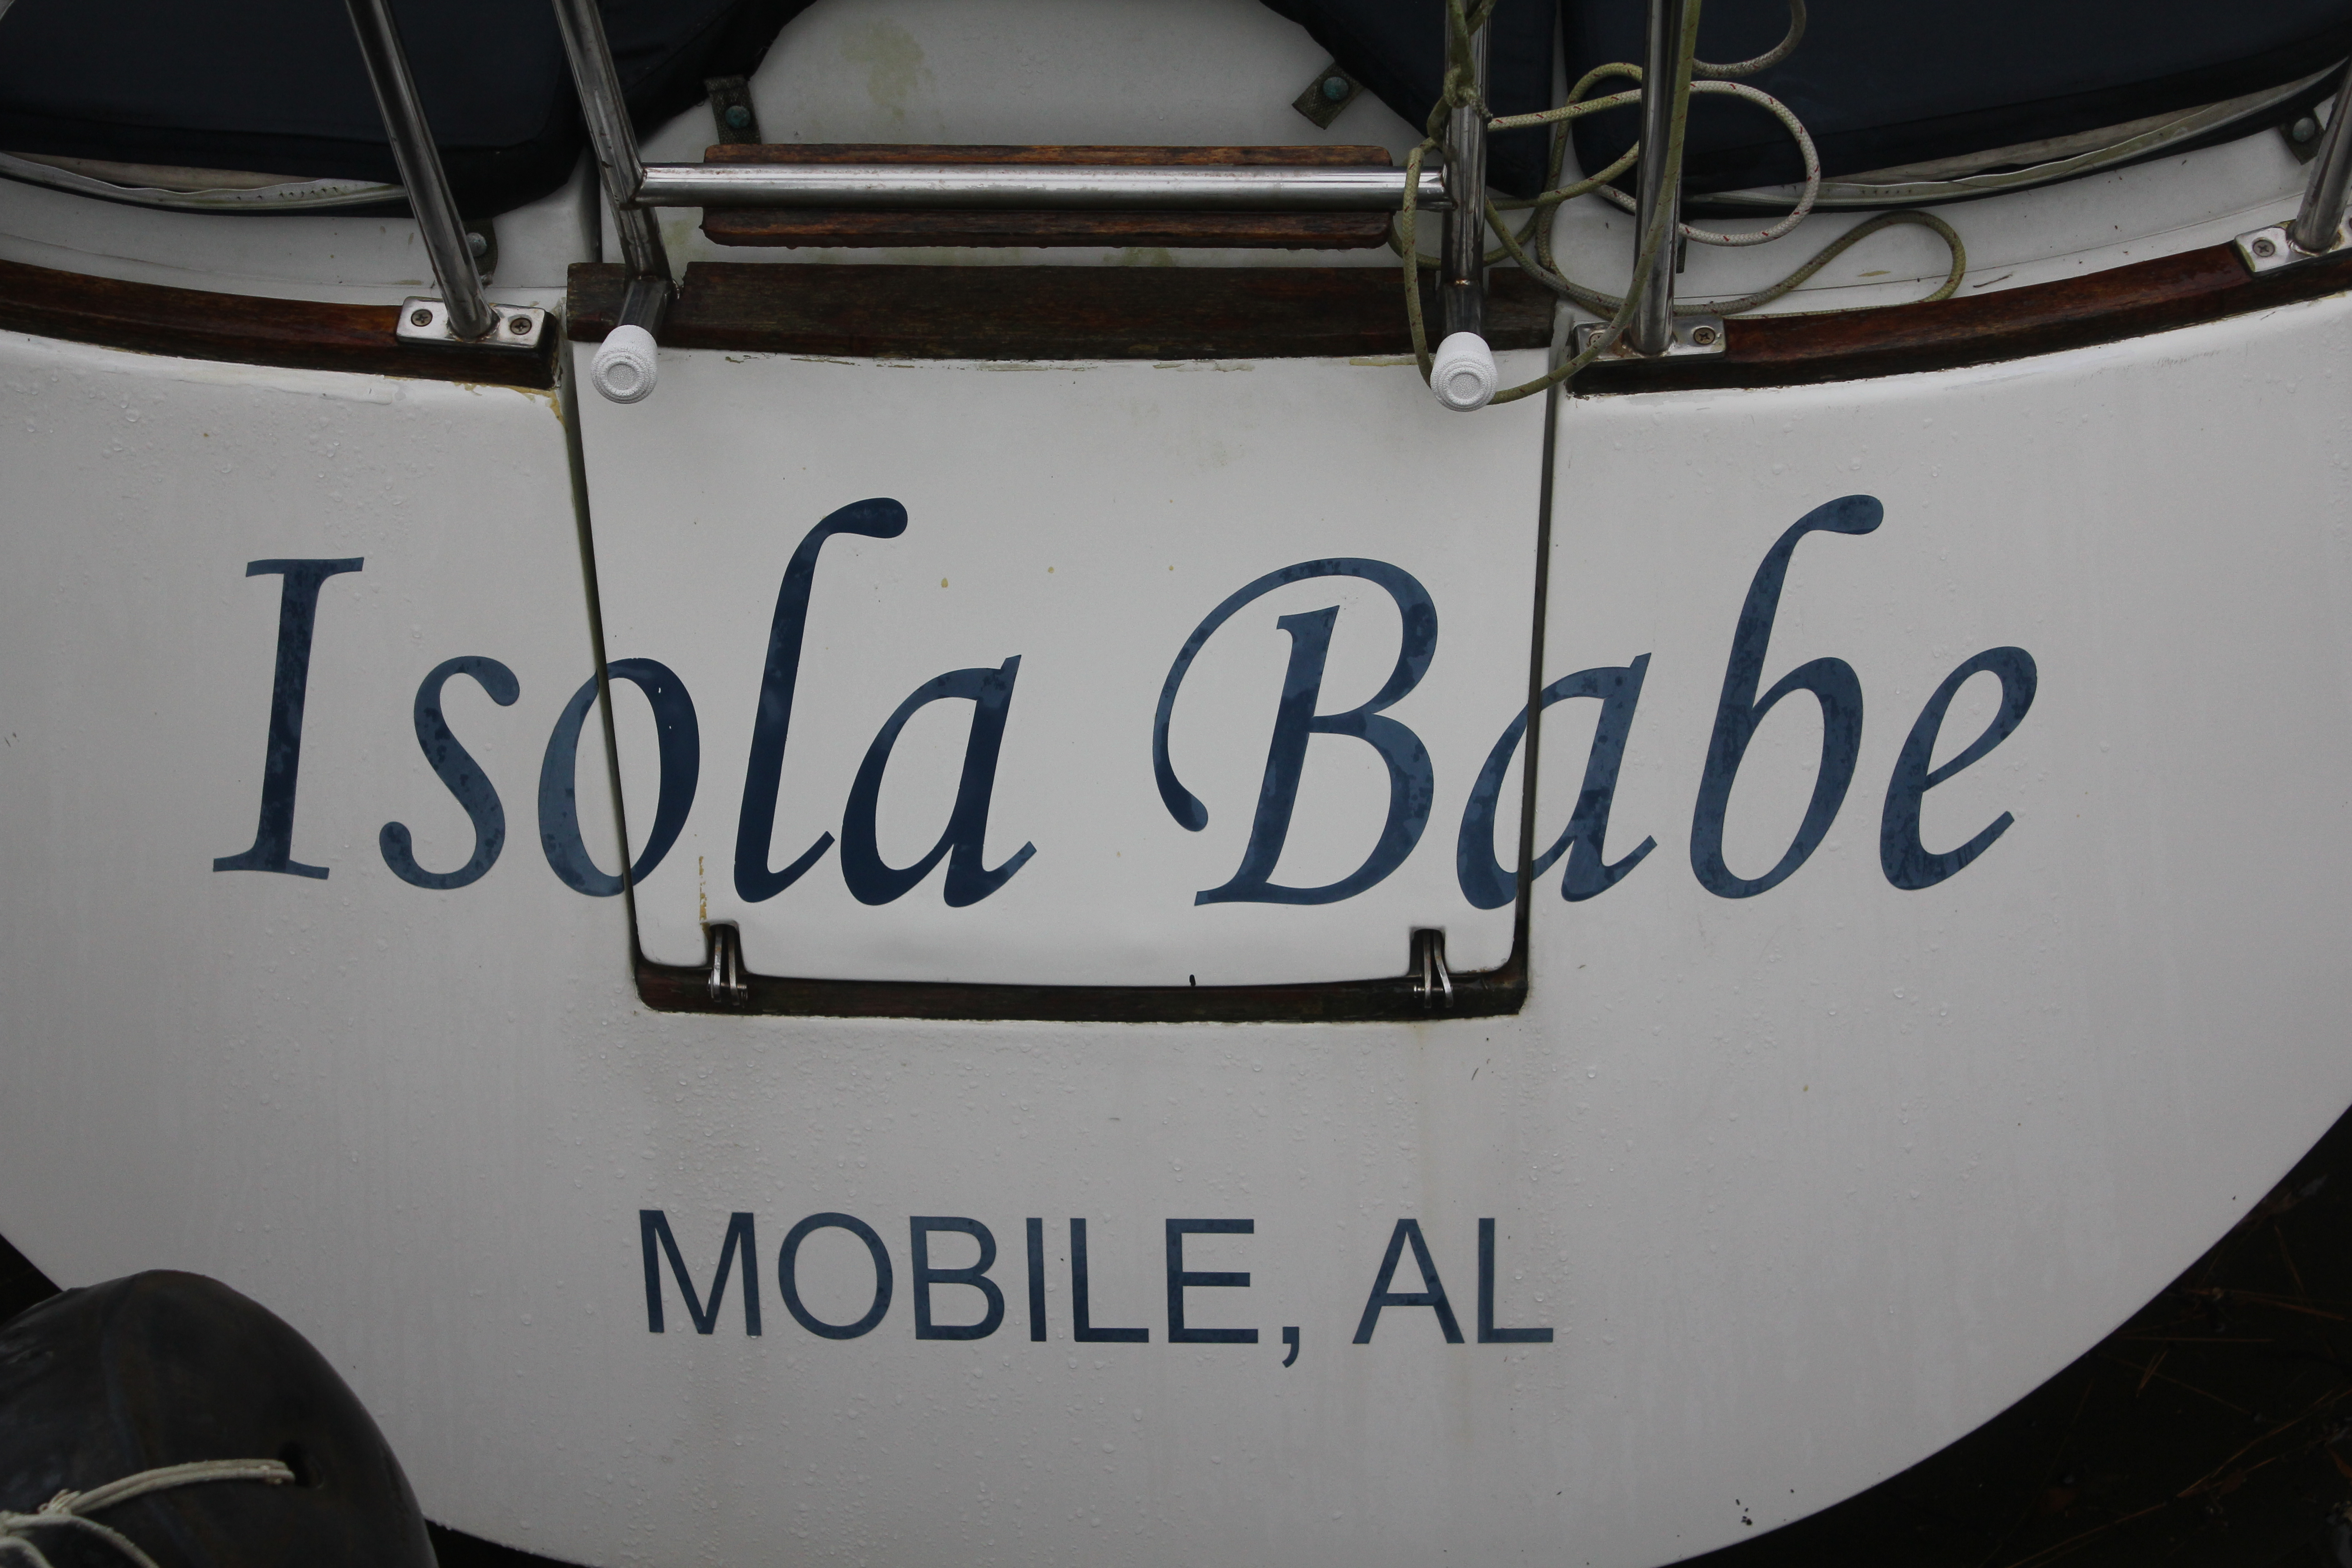 Giving your new boat a name can be a fun process. Make sure it's a name you can live with!